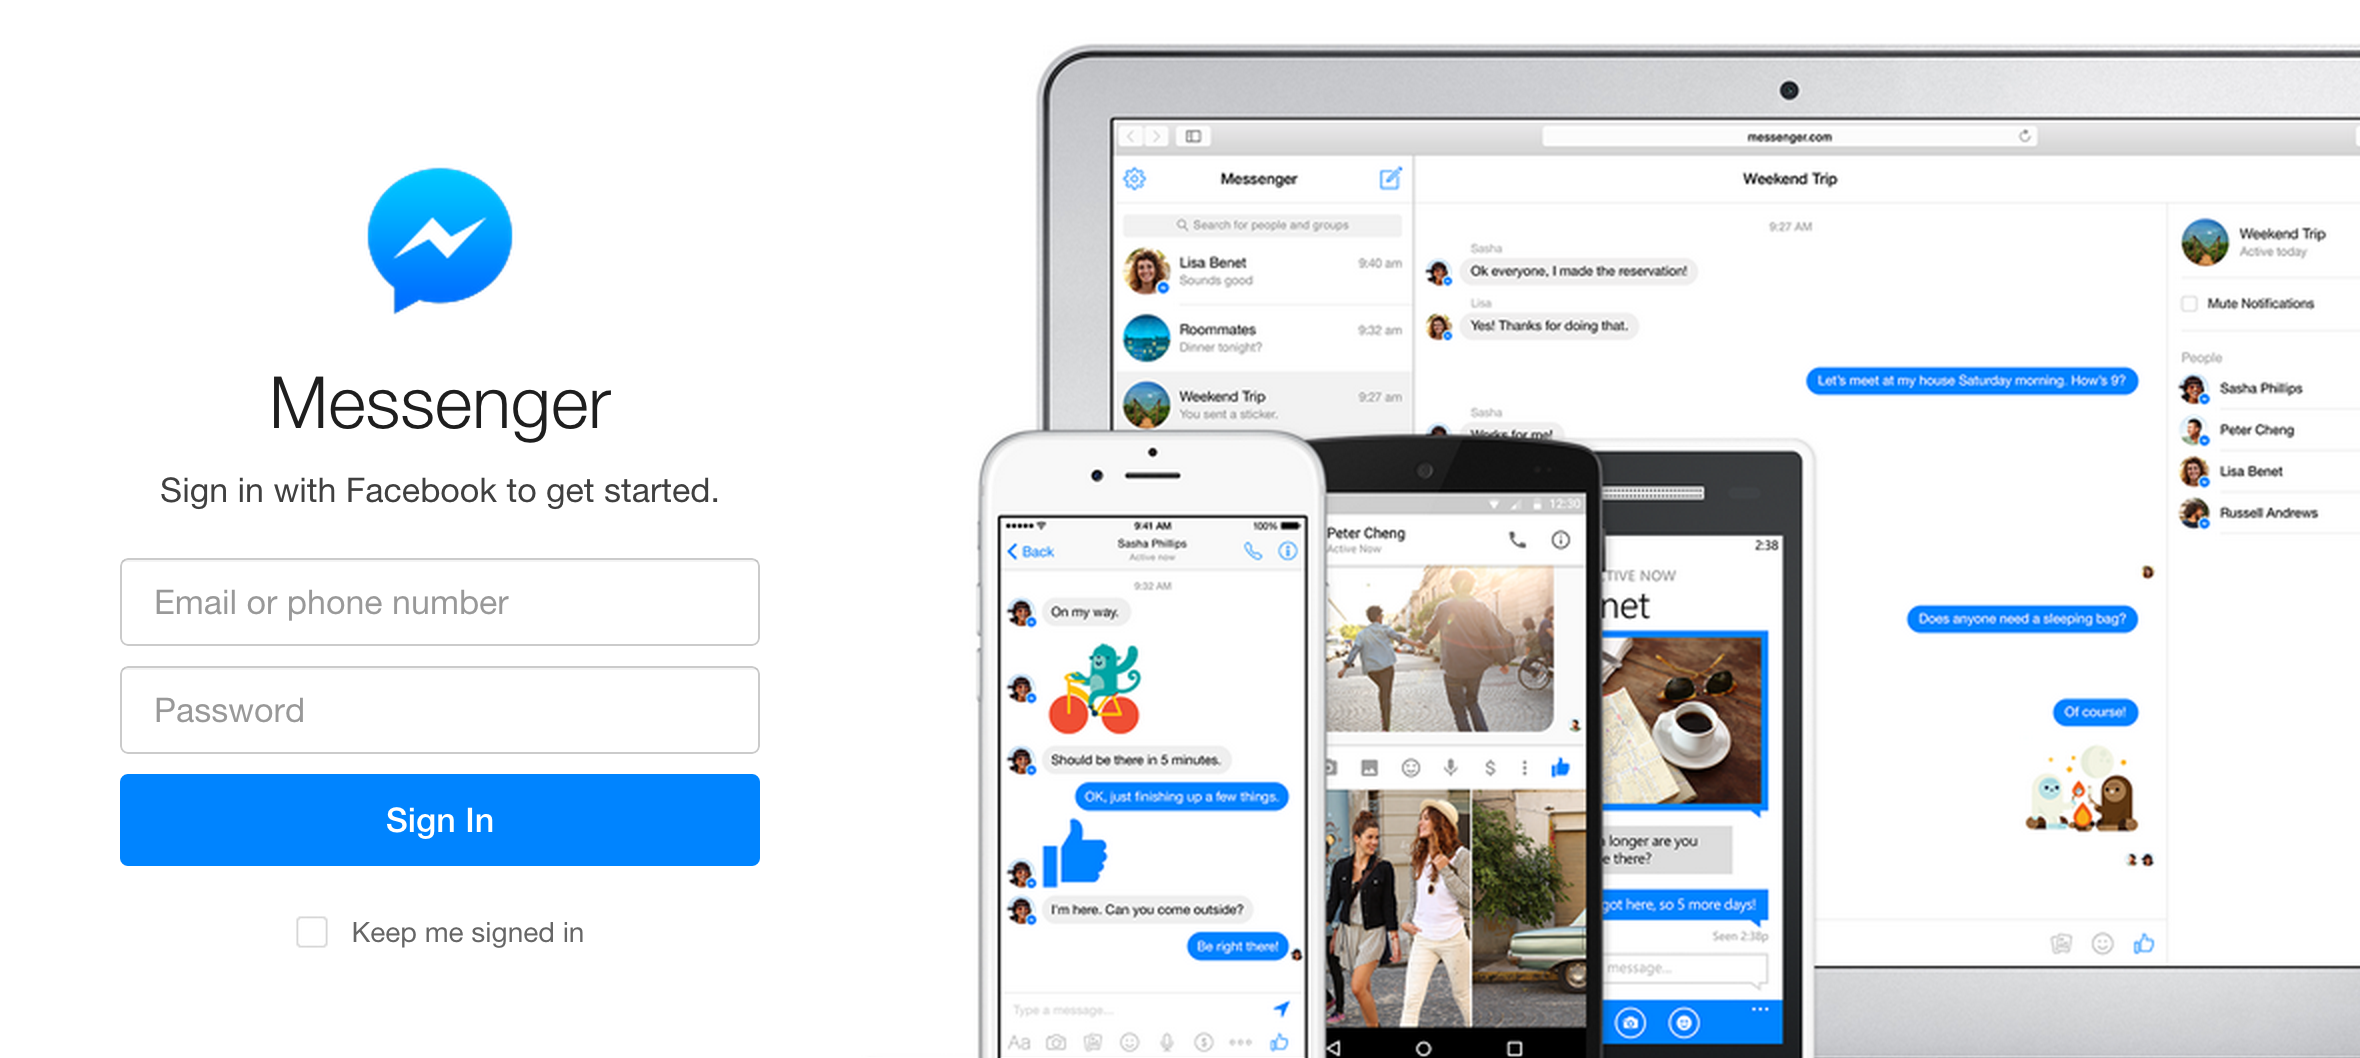 This App Brings Facebook Messenger To Your Mac's Desktop